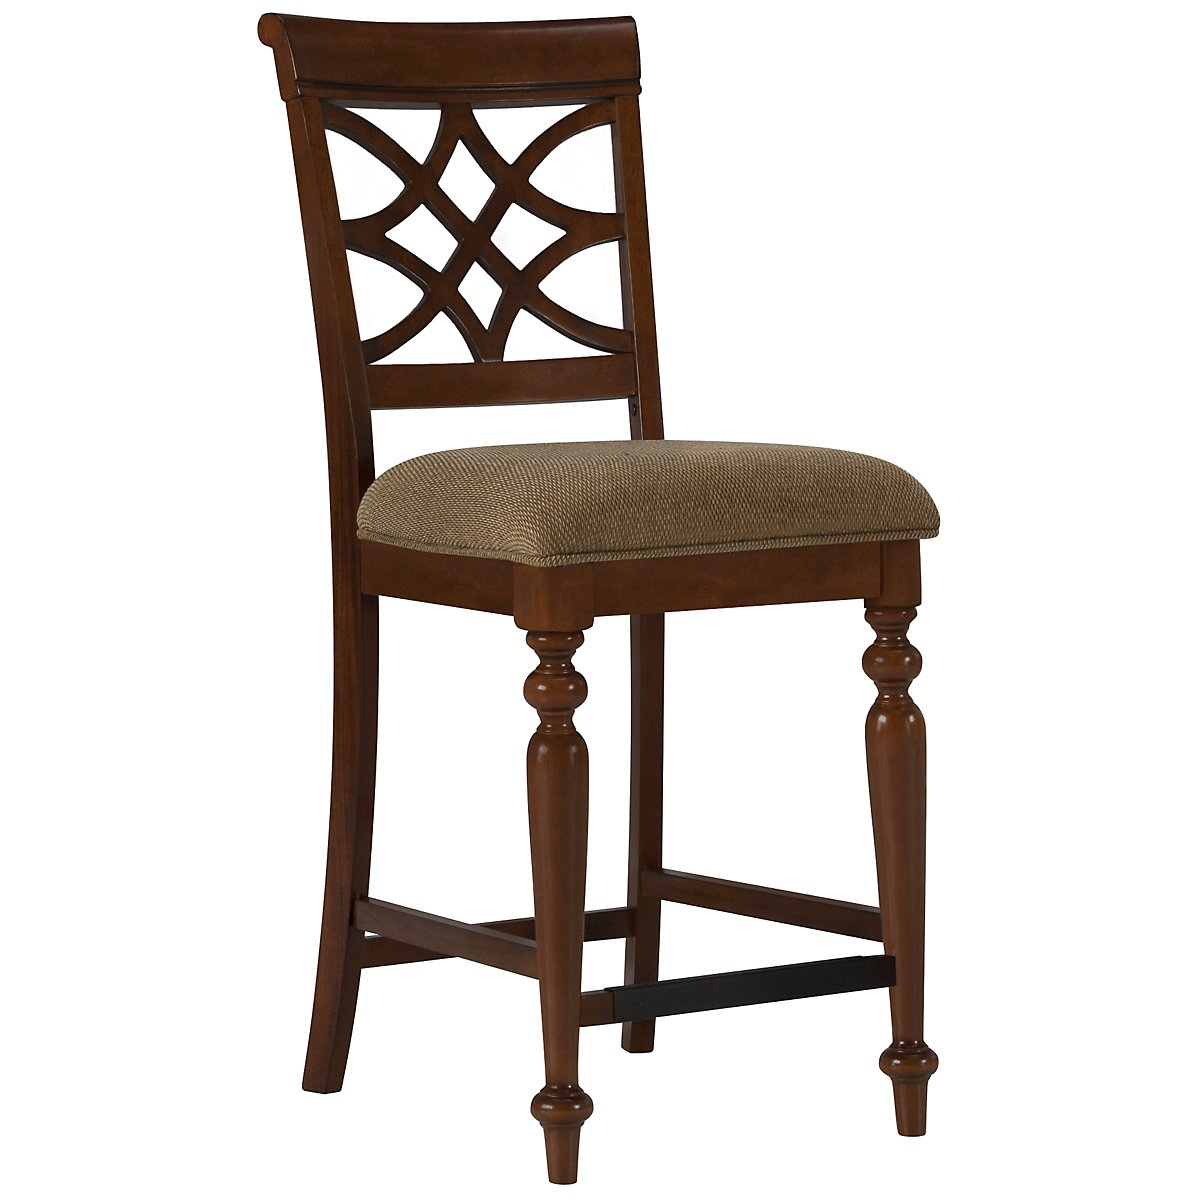 "Oxford Mid Tone 24"" Wood Barstool"